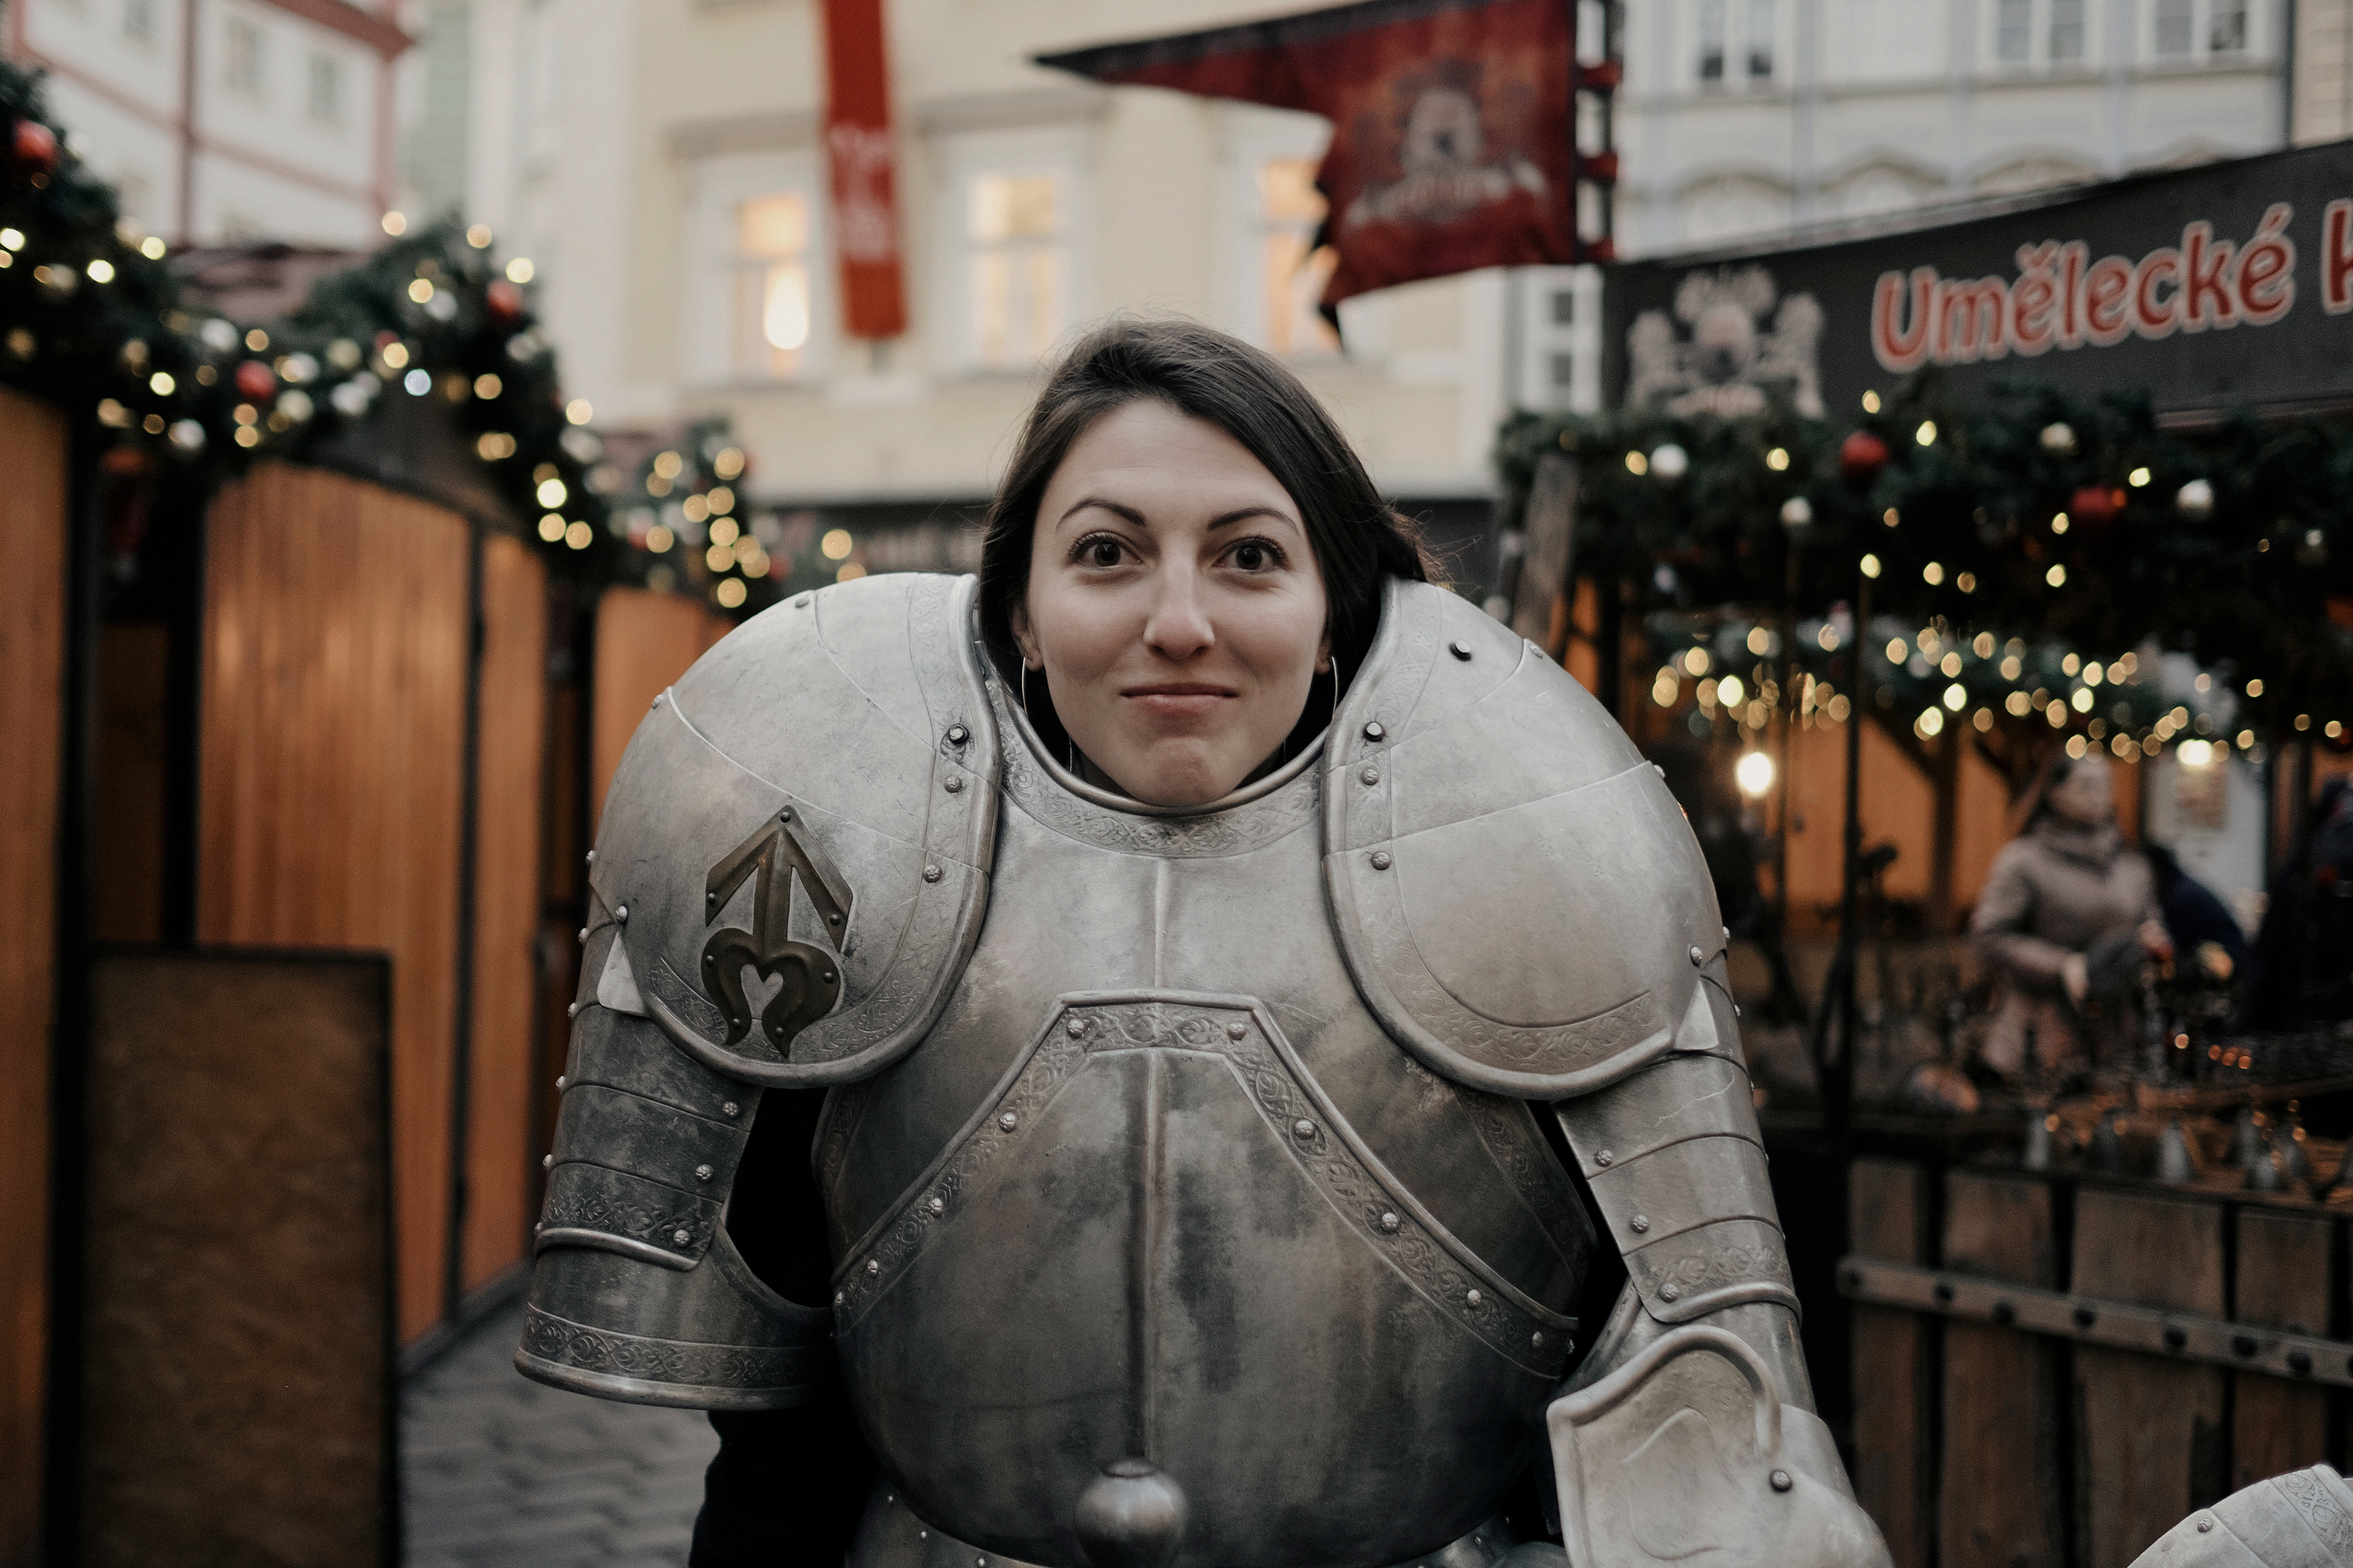 My lovely sister as a medieval knight.